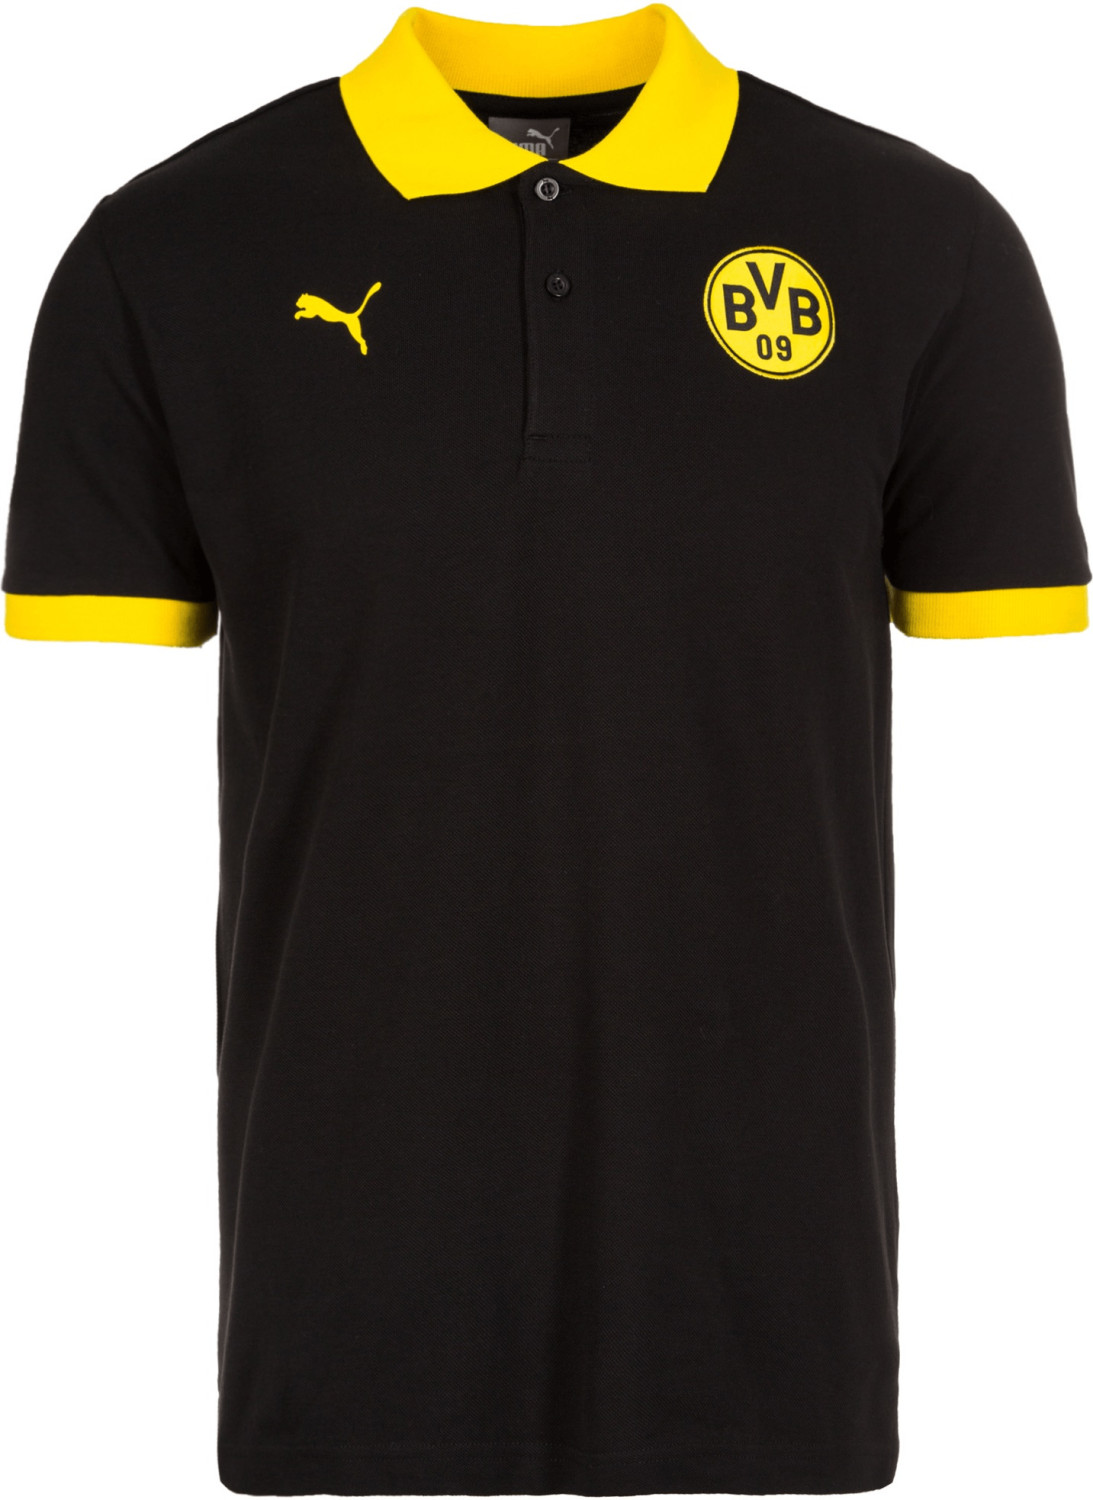 Puma BVB Wappen Polo black/cyber yellow